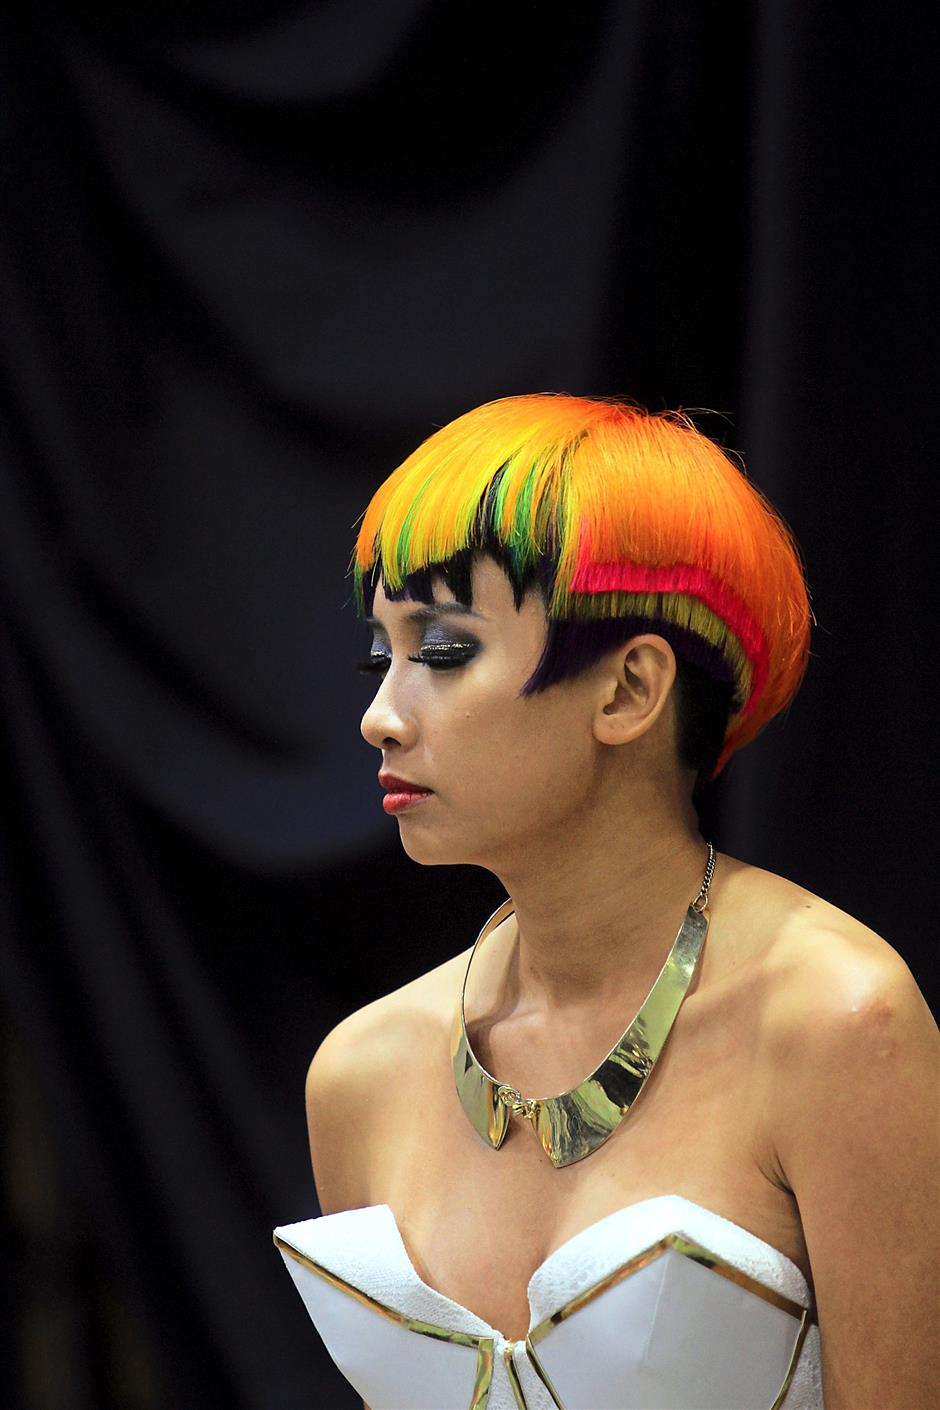 One of the models at the Art of Hair show during the recent IBE 2015 at the KLCC.